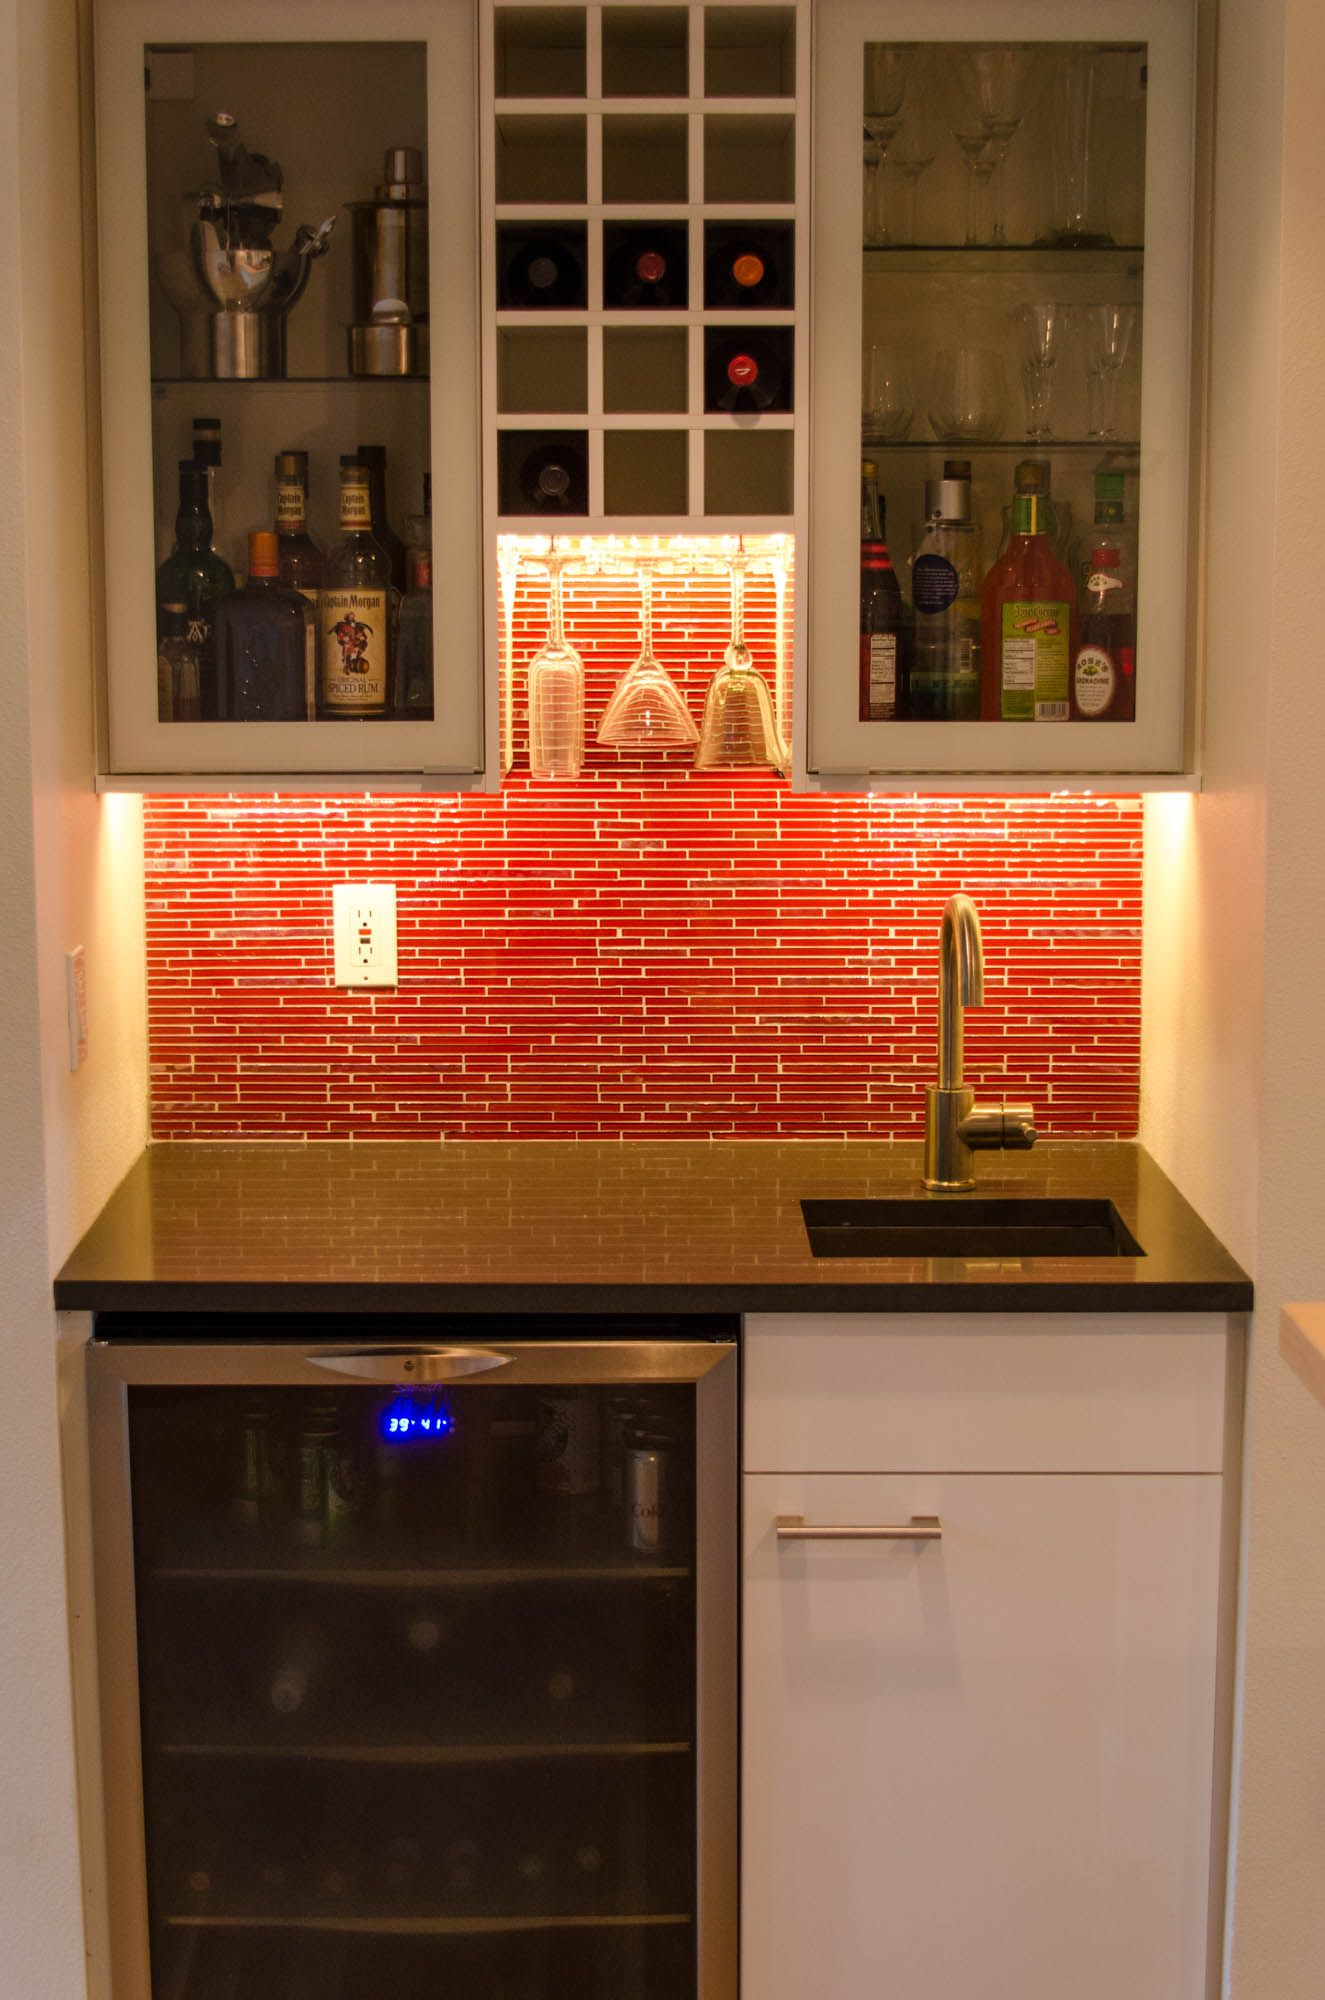 Ikea Wet Bar Cabinets With Sink In Small Kitche Red Backsplash